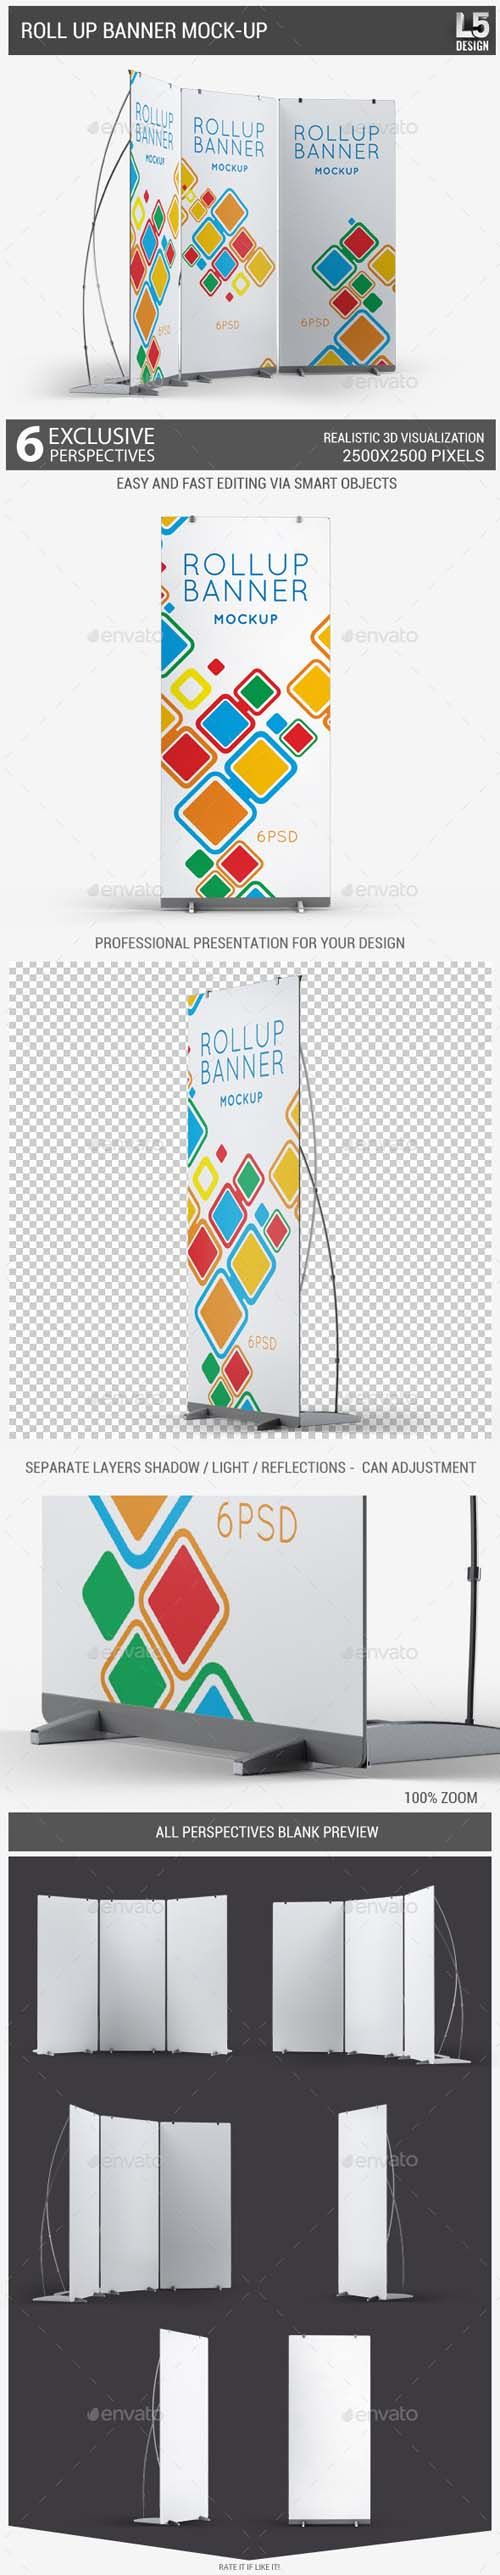 PSD Mock-Up - Roll Up Banner